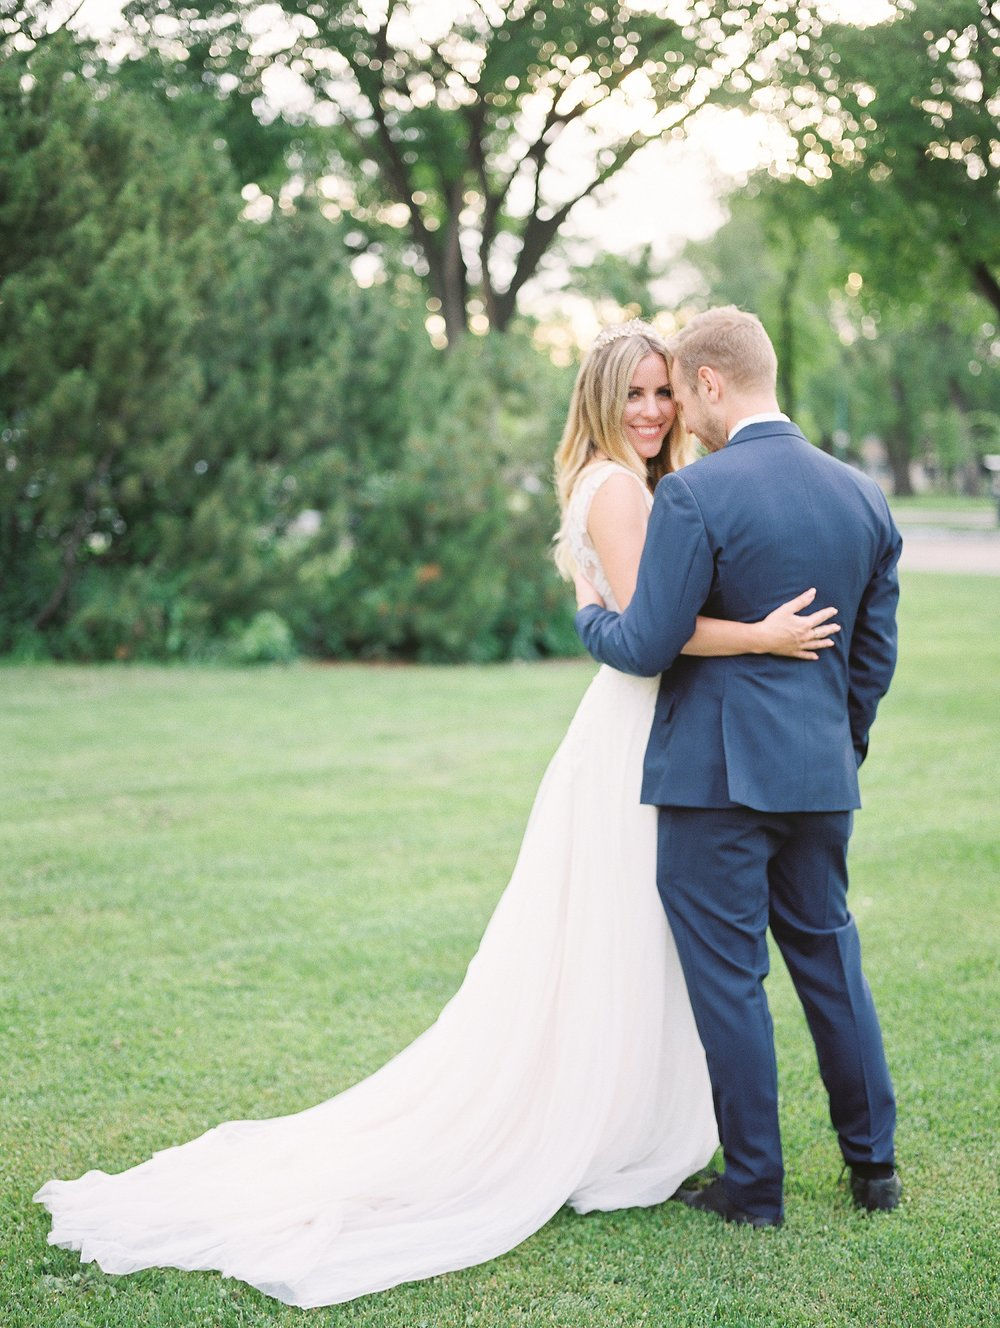 Winnipeg Wedding Photographer | Floravere Wedding Dress | Photo by Winnipeg Film Photographer Keila Marie Photography